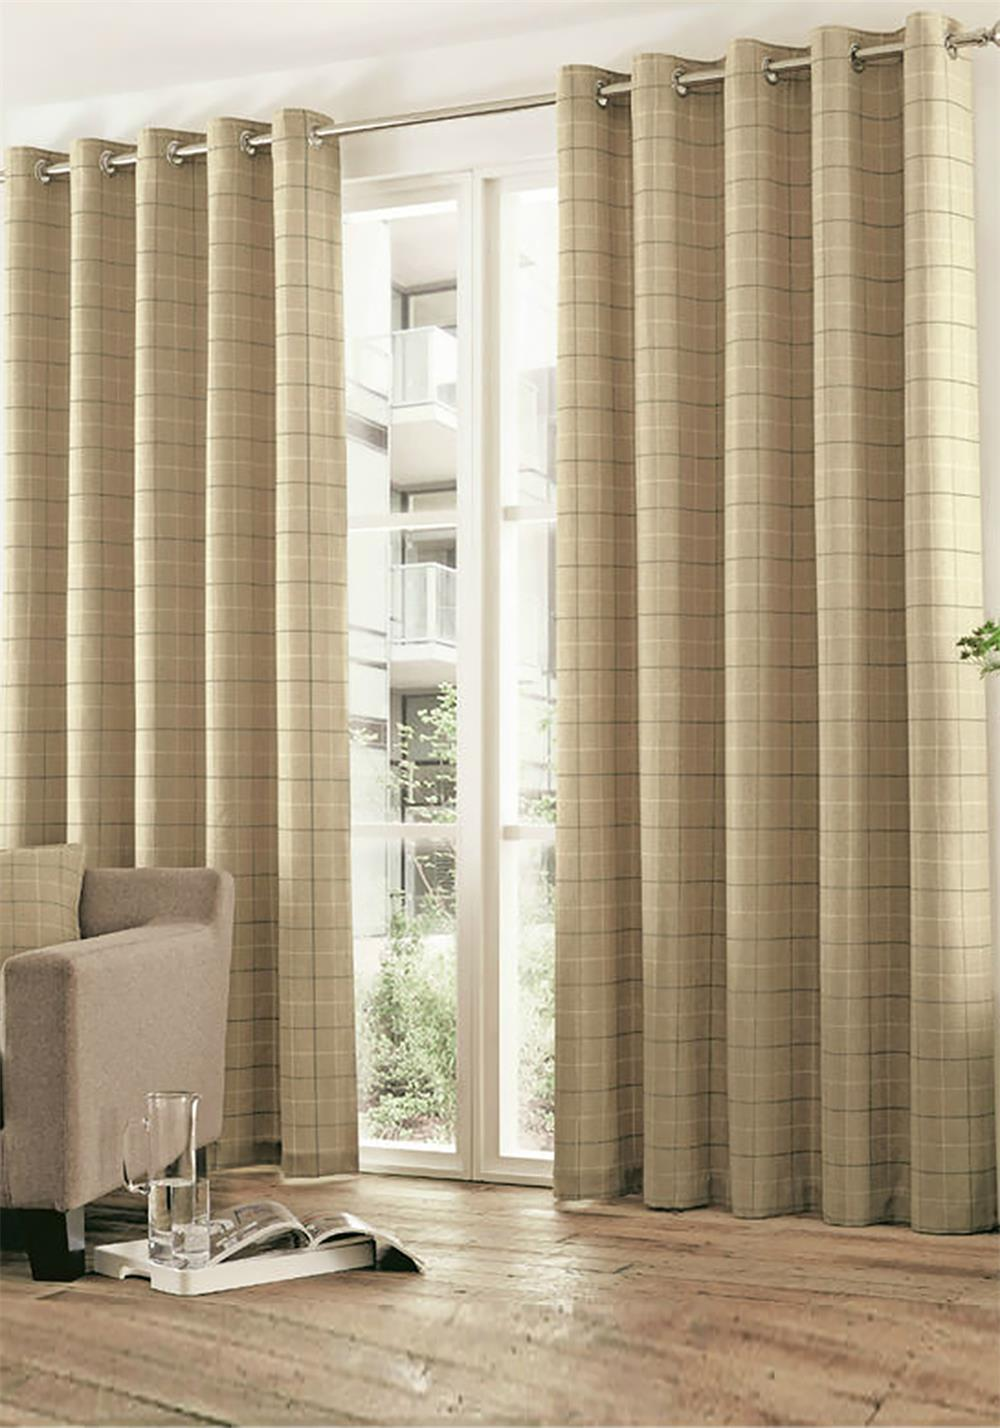 Curtina Braemar Check Fully Lined Eyelet Curtains, Natural